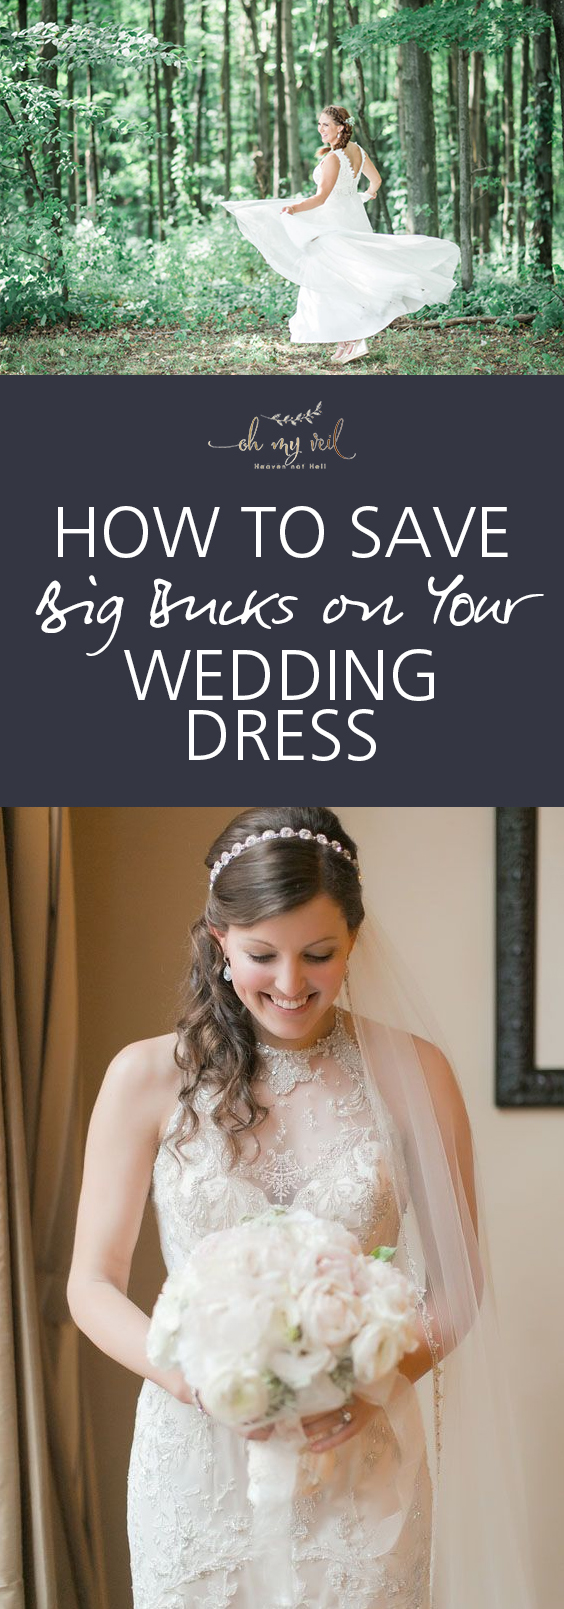 How to Save Big Bucks on Your Wedding Dress| Wedding Dress, Save Money, Save Money on Your Wedding, Saving Money, DIY Wedding, Money Saving Tips and Tricks, Spend Less, Wedding Dress #Weddings #WeddingDress #SaveMoney